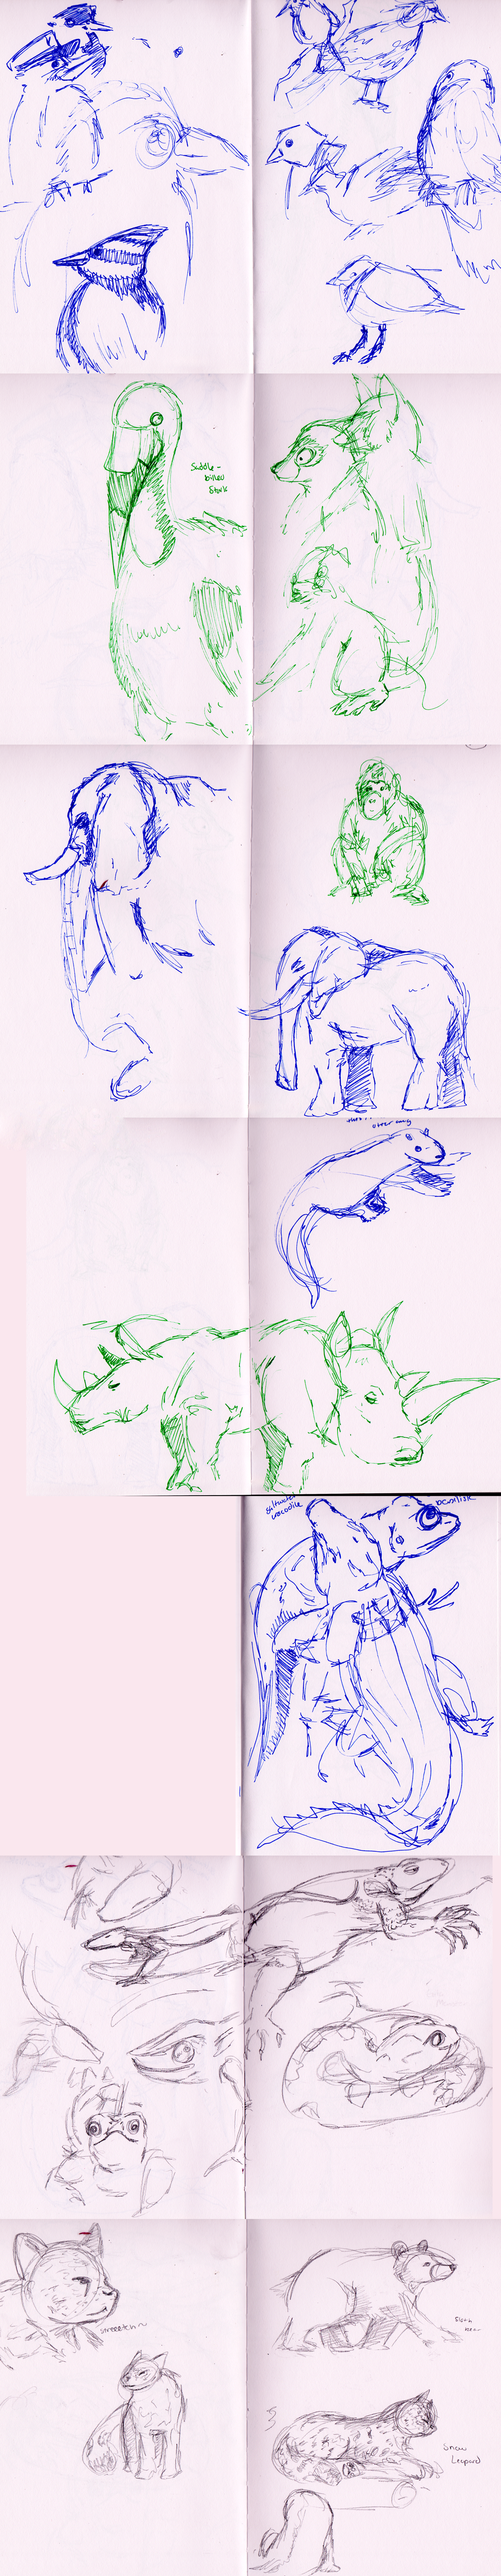 zoosketches